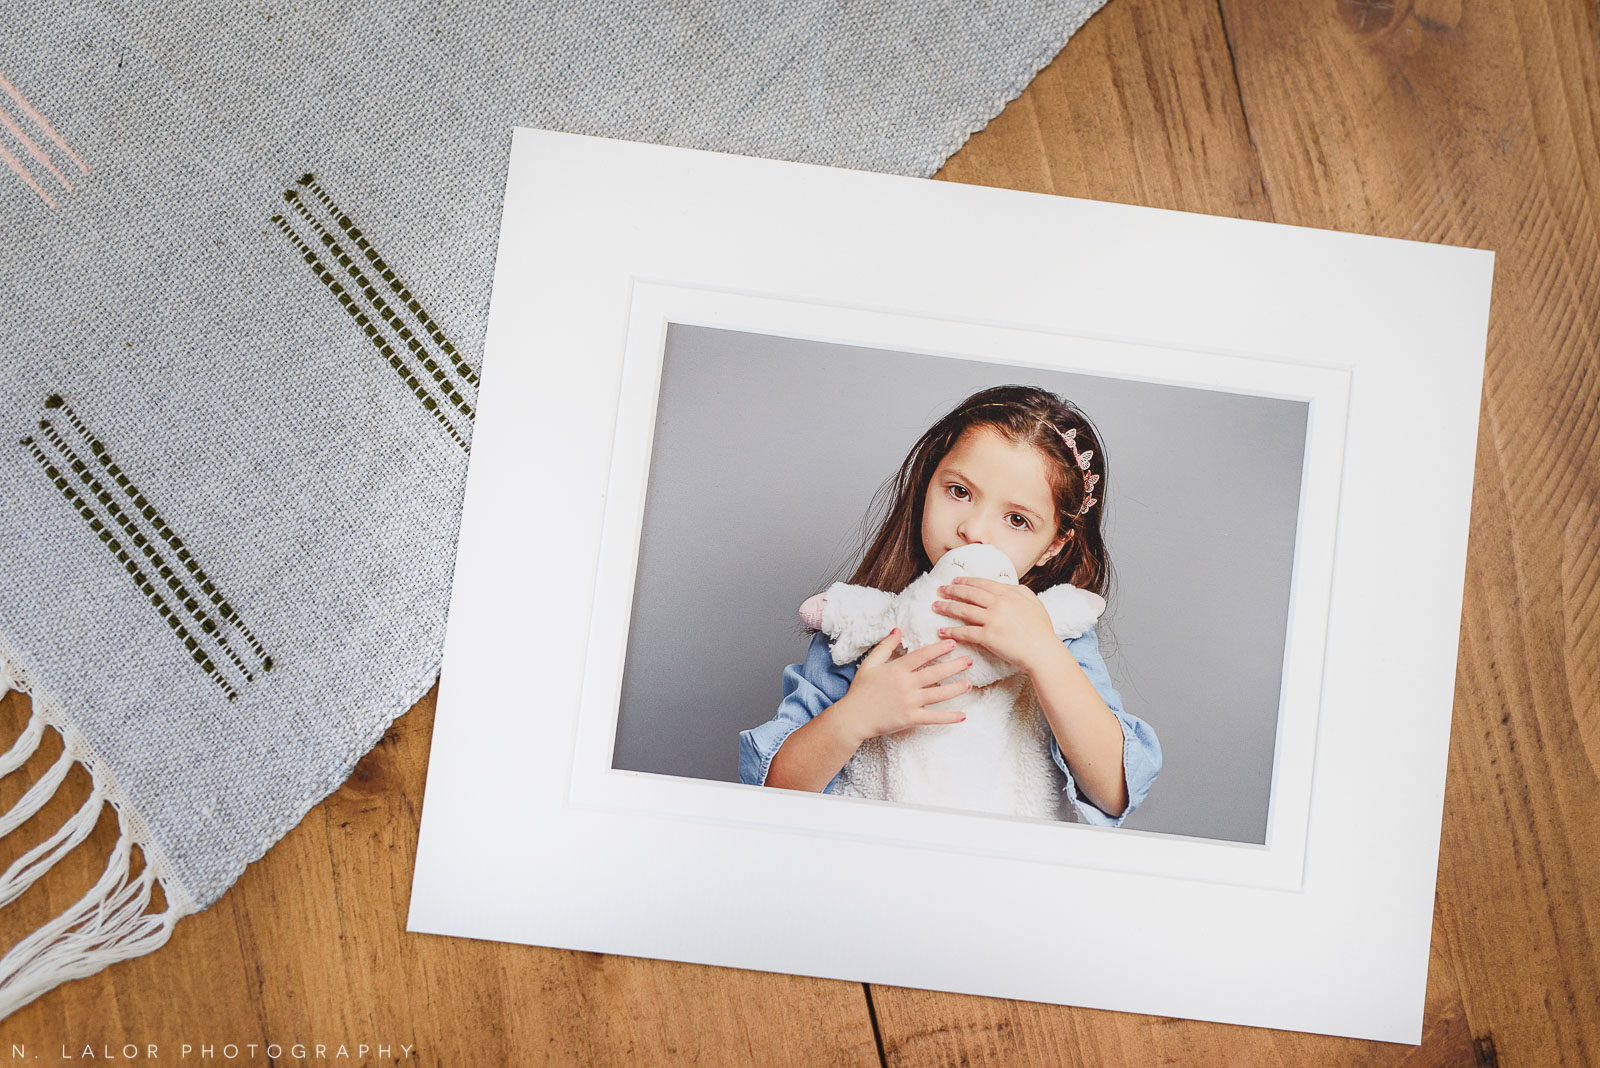 Photograph of a fine art print in a tabletop setting, by N. Lalor Photography. Greenwich, Connecticut.